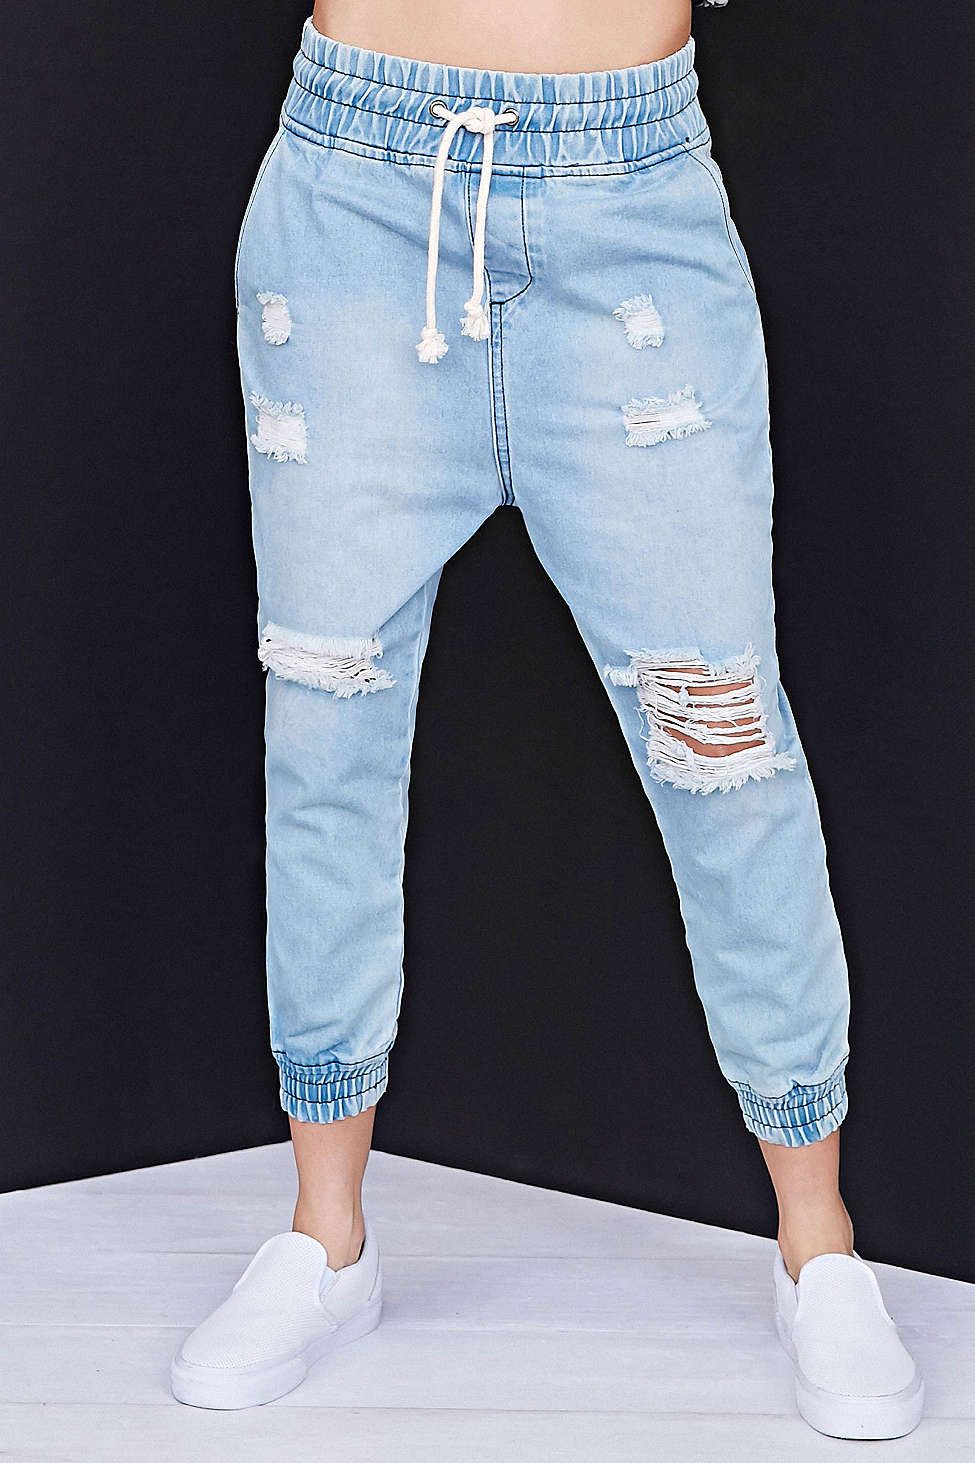 288b6df15d Mad Love Low-Slung Jogger Pant - Urban Outfitters Pantalones Leggins